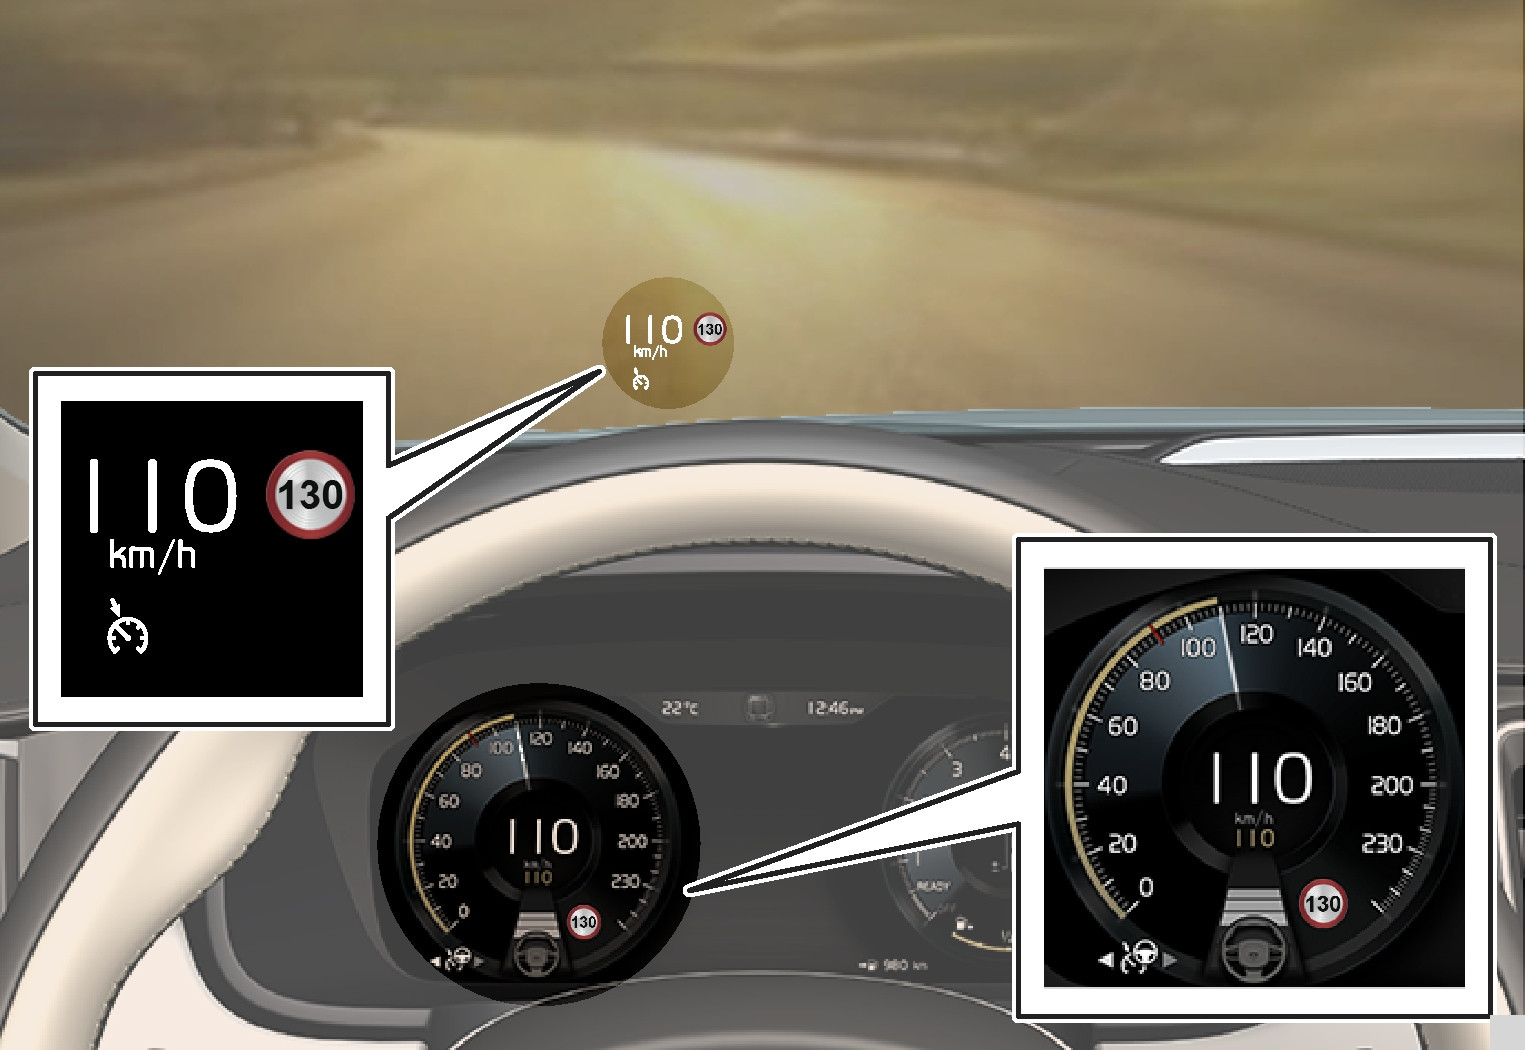 P5-S90/V90-1617-Pilot Assist, Follows, set to maintain 110 km/h and to follow a vehicle ahead